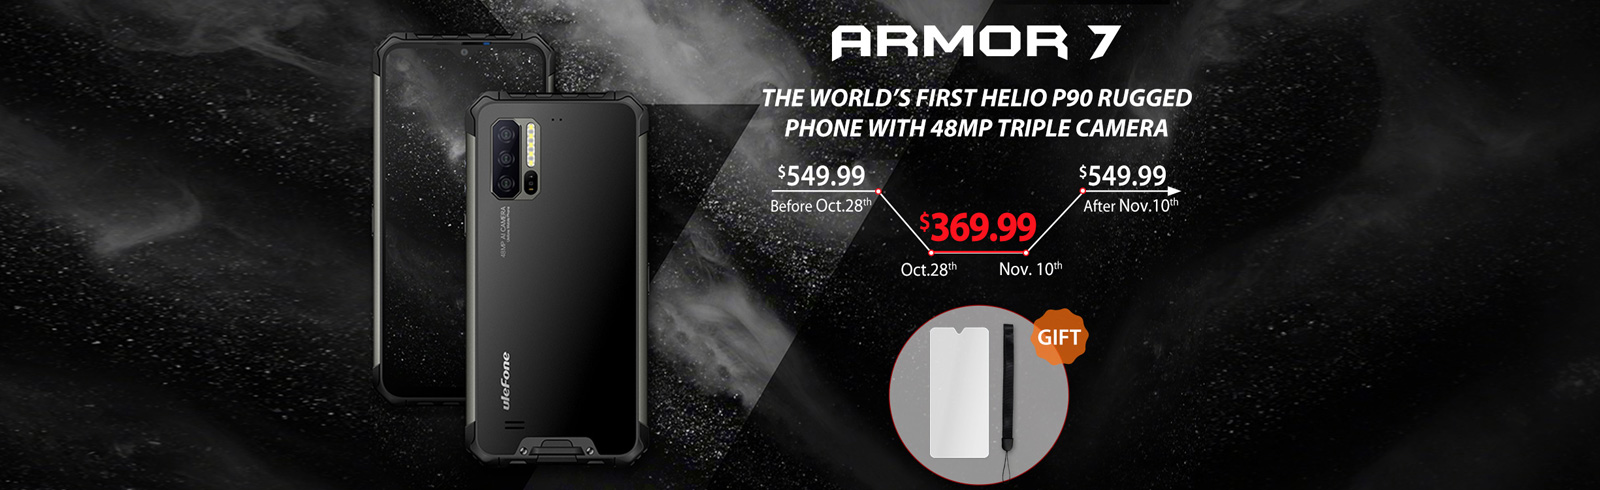 Ulefone Armor 7 goes on sale today priced at $369.99